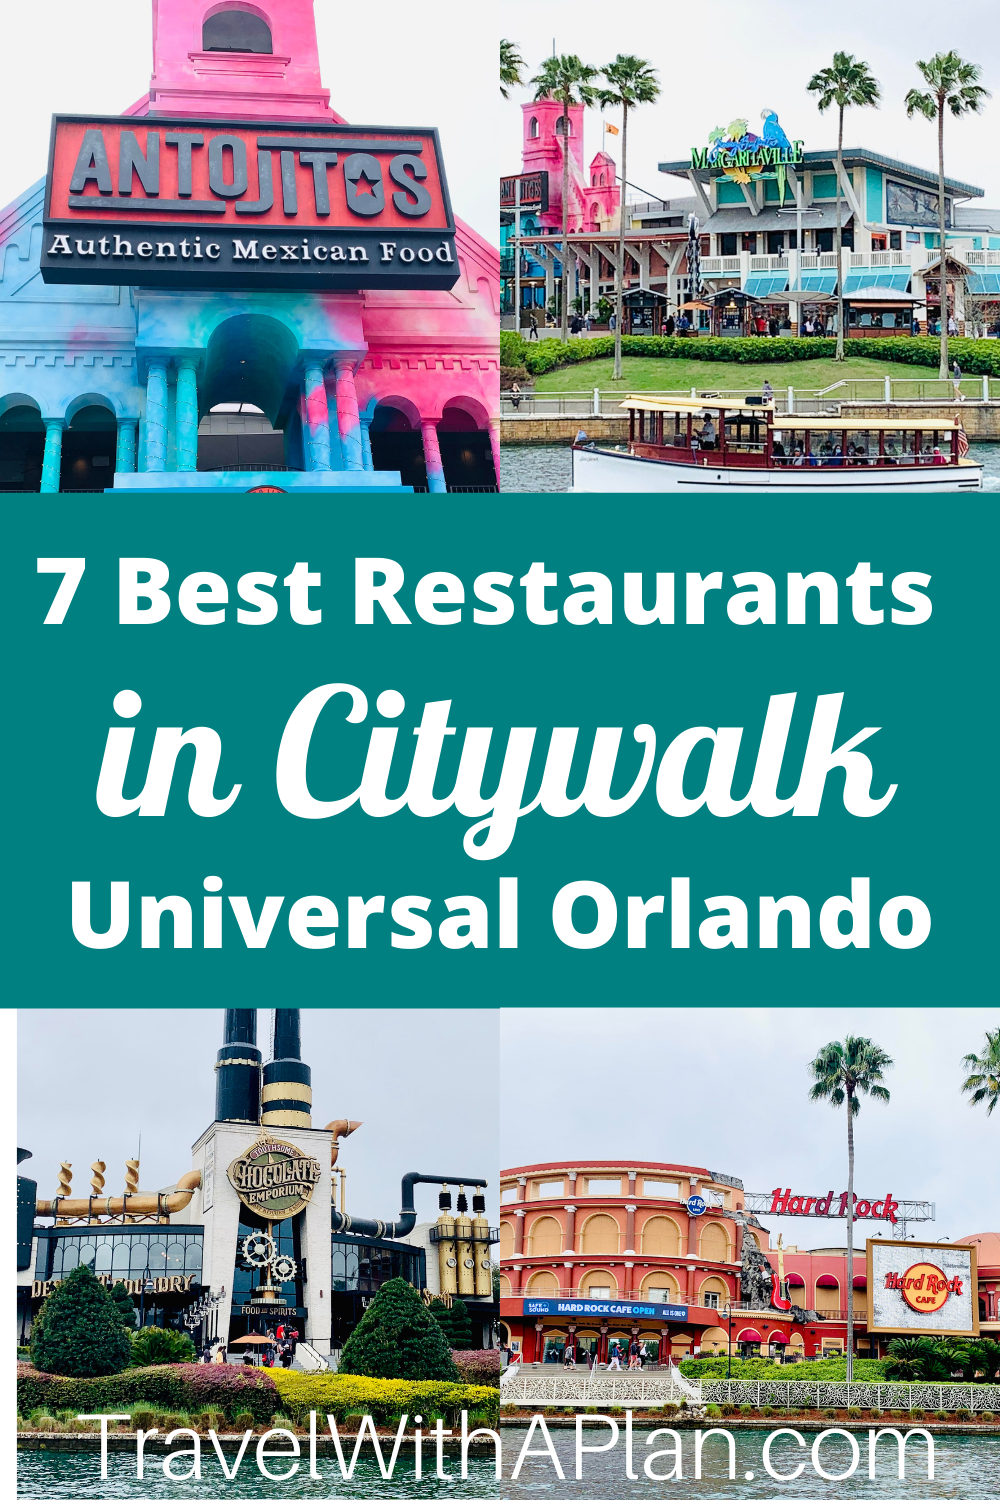 The 7 best restaurants in Citywalk ranked by top U.S. family travel blog, Travel With A Plan!